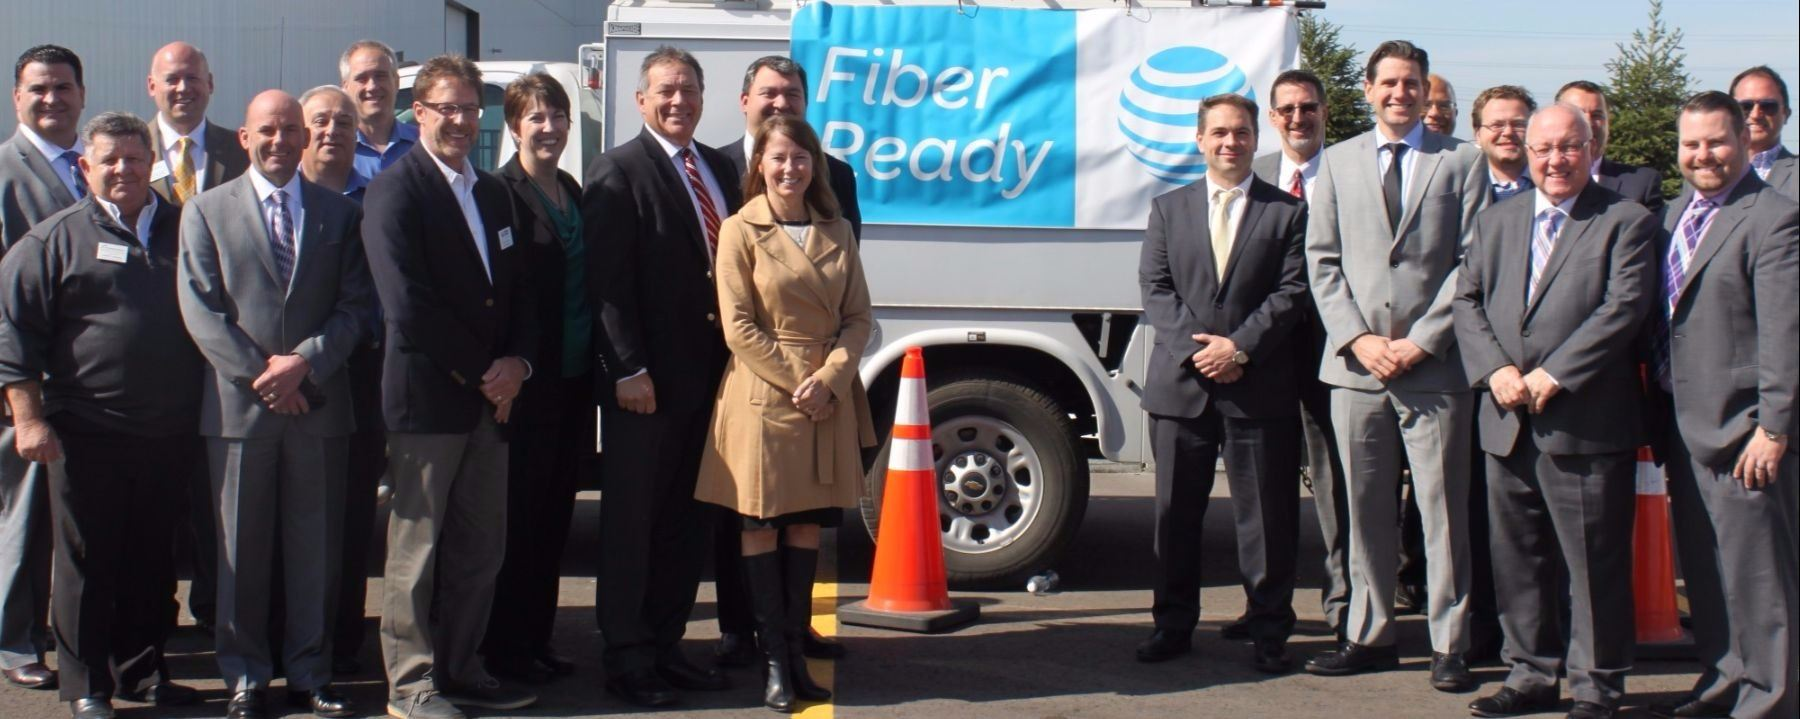 Sterling Heights is Fiber Ready